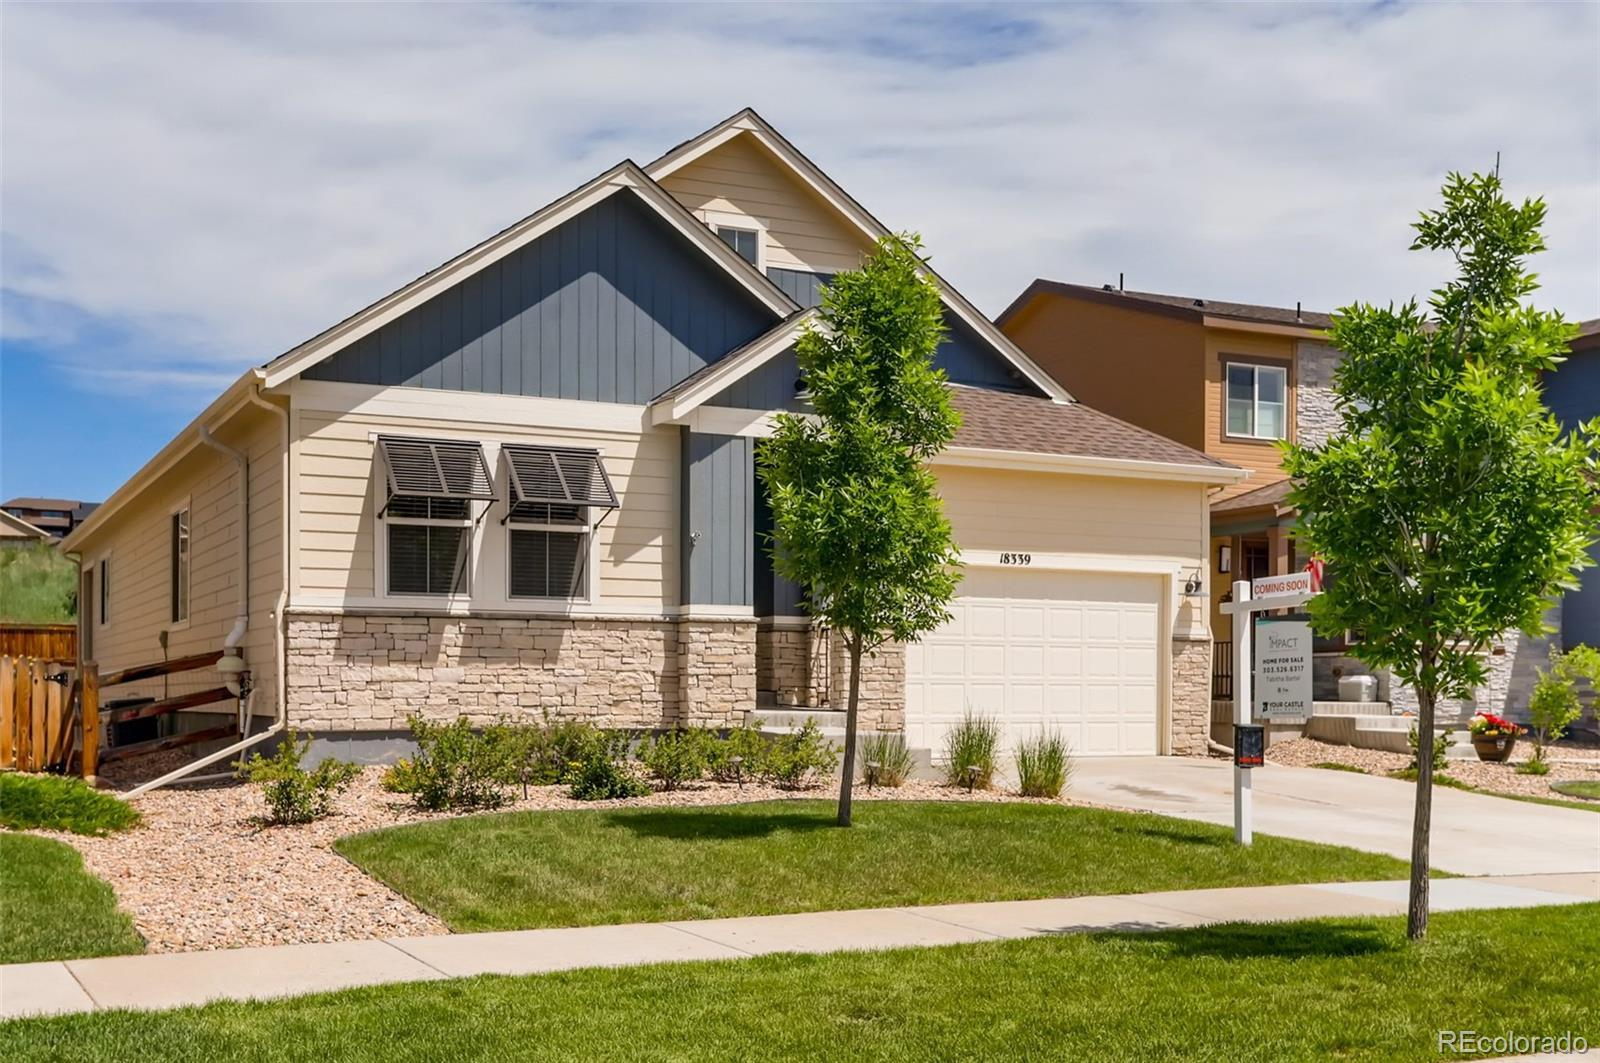 18339 W 84th Place, Arvada, CO 80007 - #: 8784797